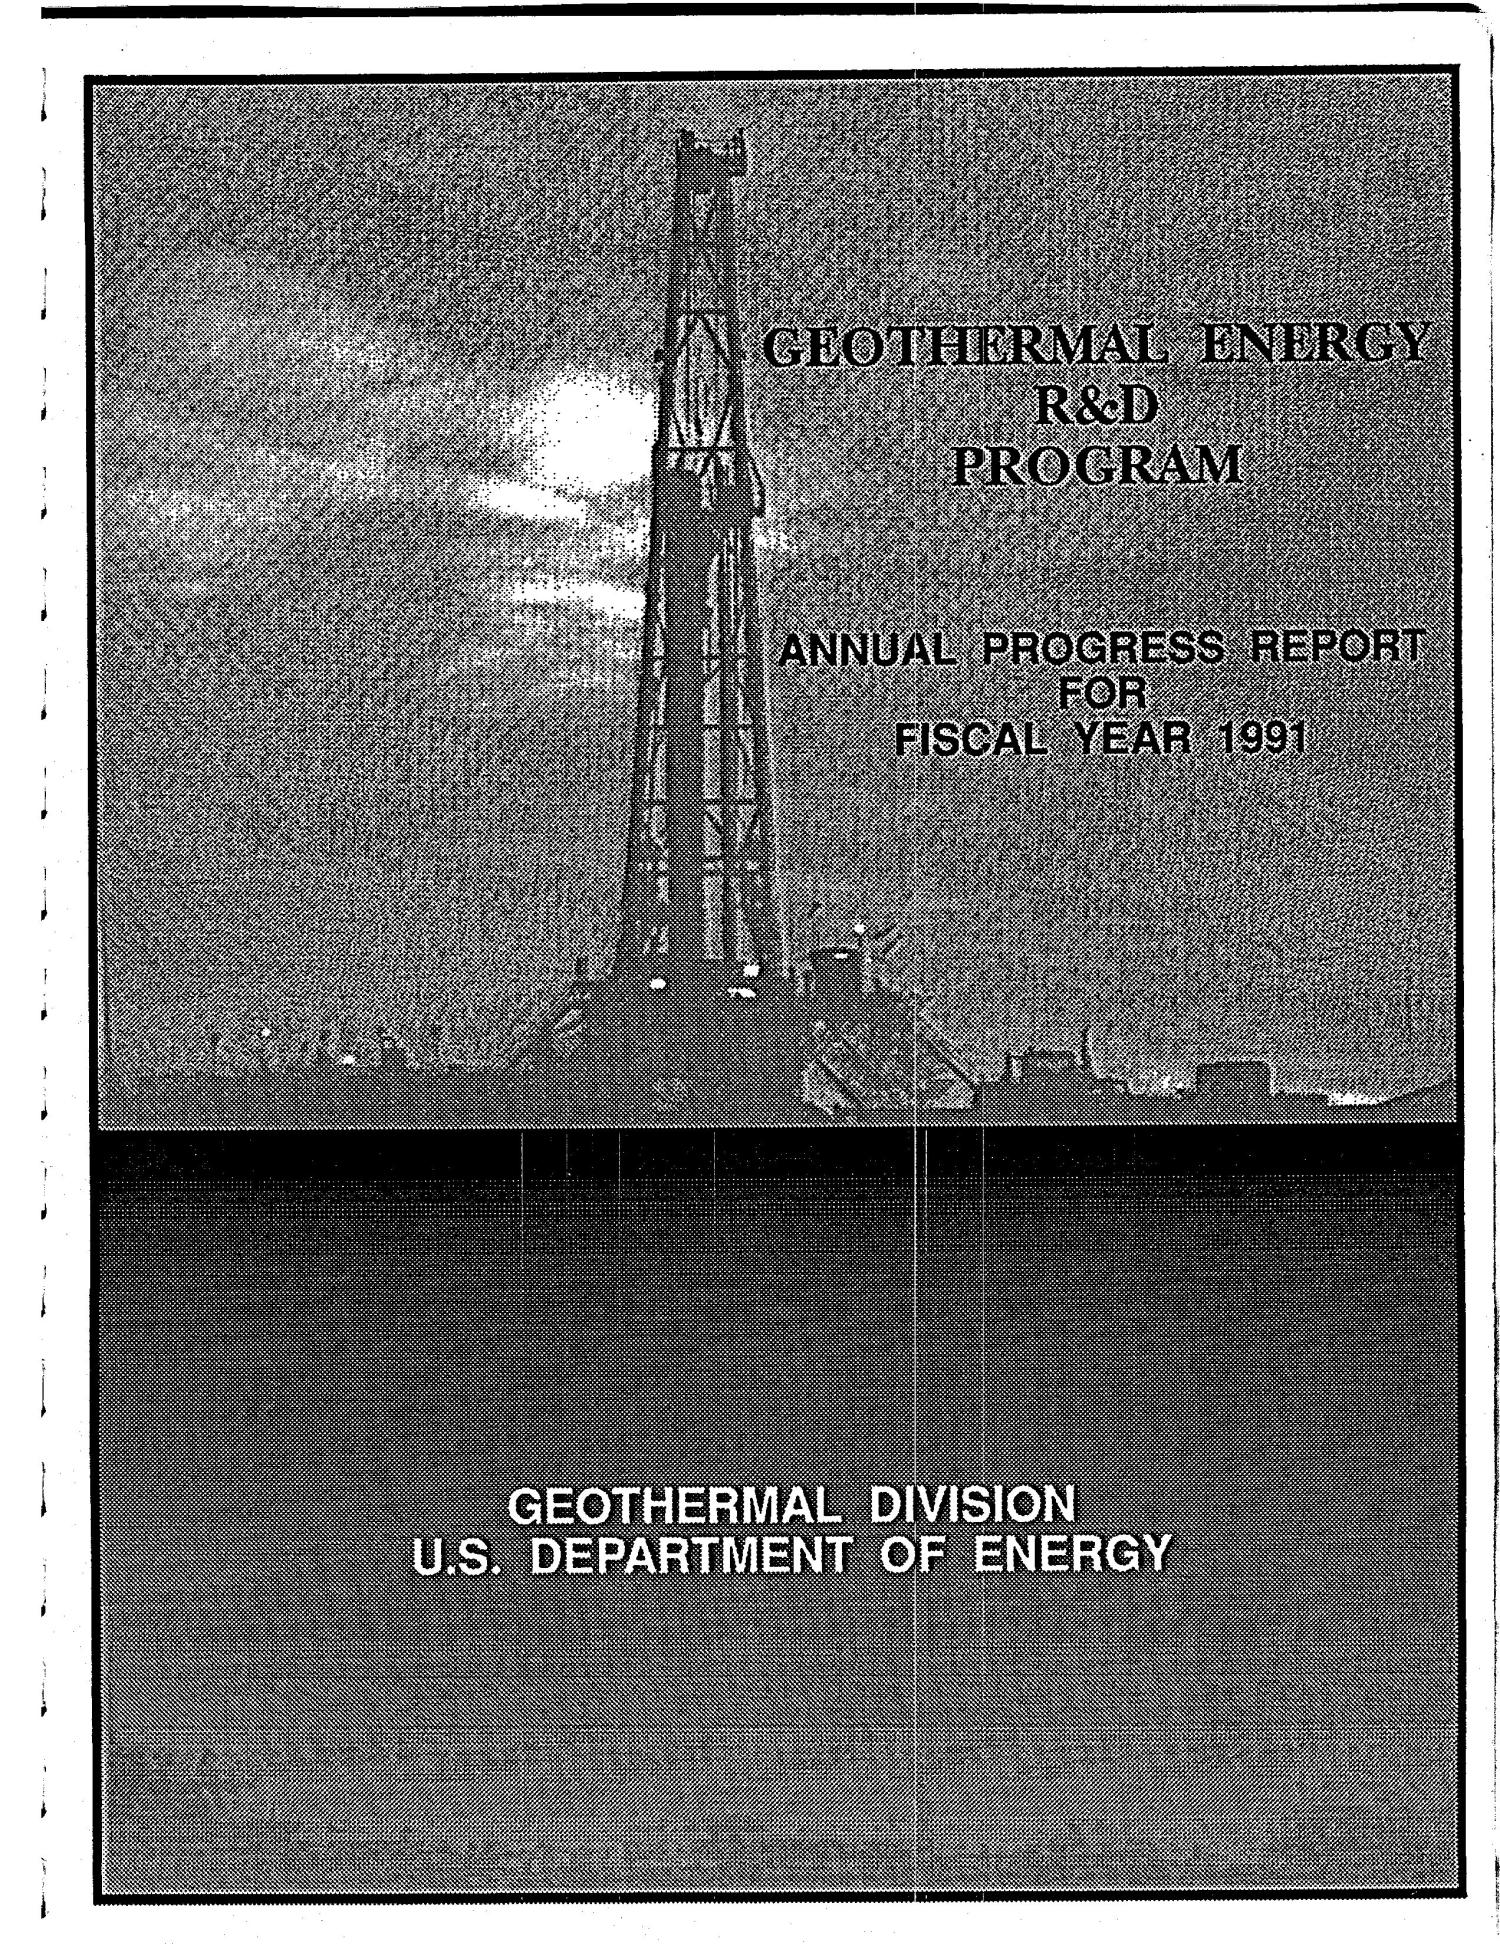 Geothermal Energy R&D Program: Annual Progress Report for Fiscal Year 1991                                                                                                      [Sequence #]: 1 of 124